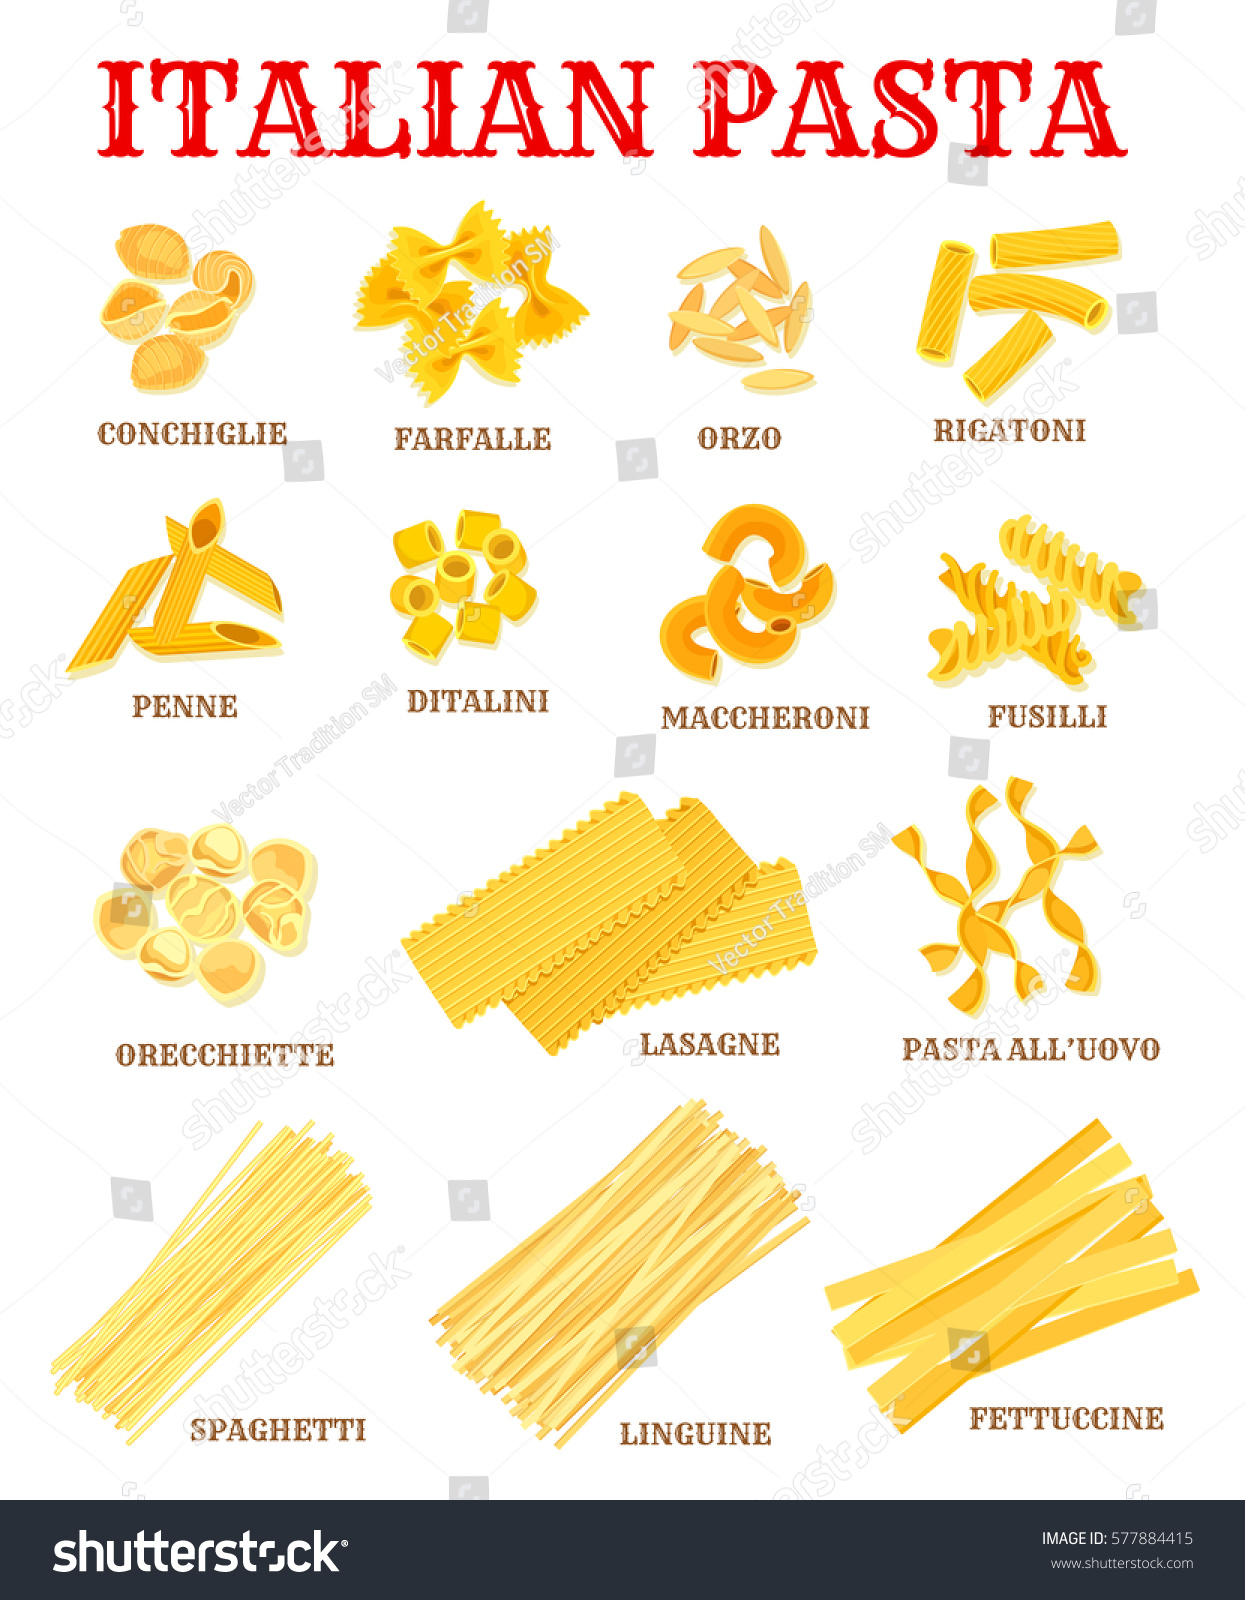 Italian pasta list different shapes names stock vector for Italian food list